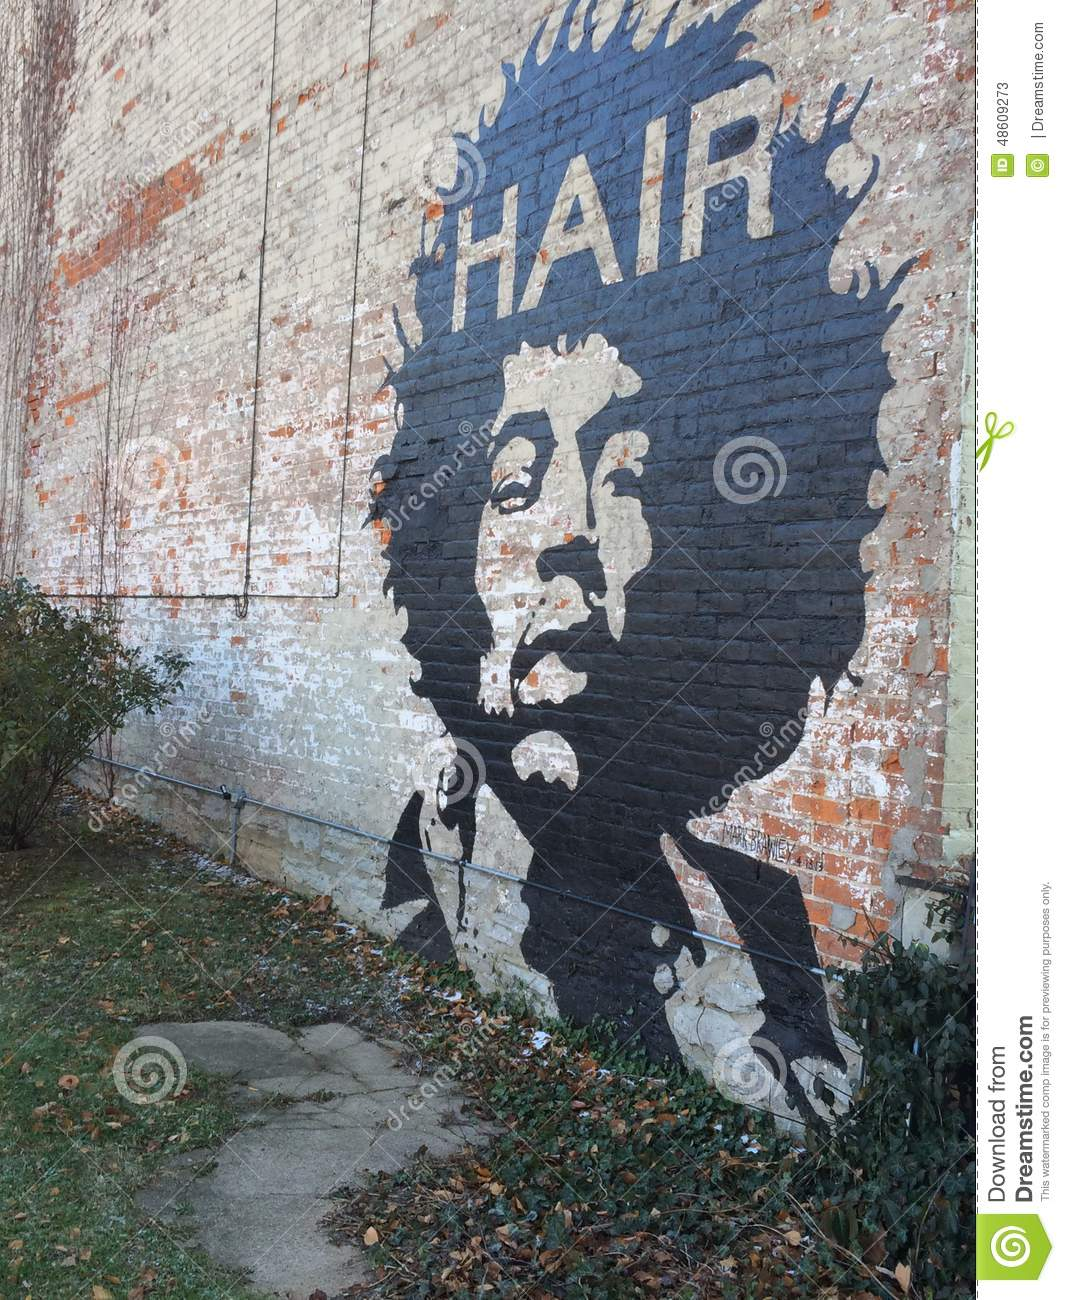 Mural on a brick wall hair editorial stock photo image for Distressed brick wall mural